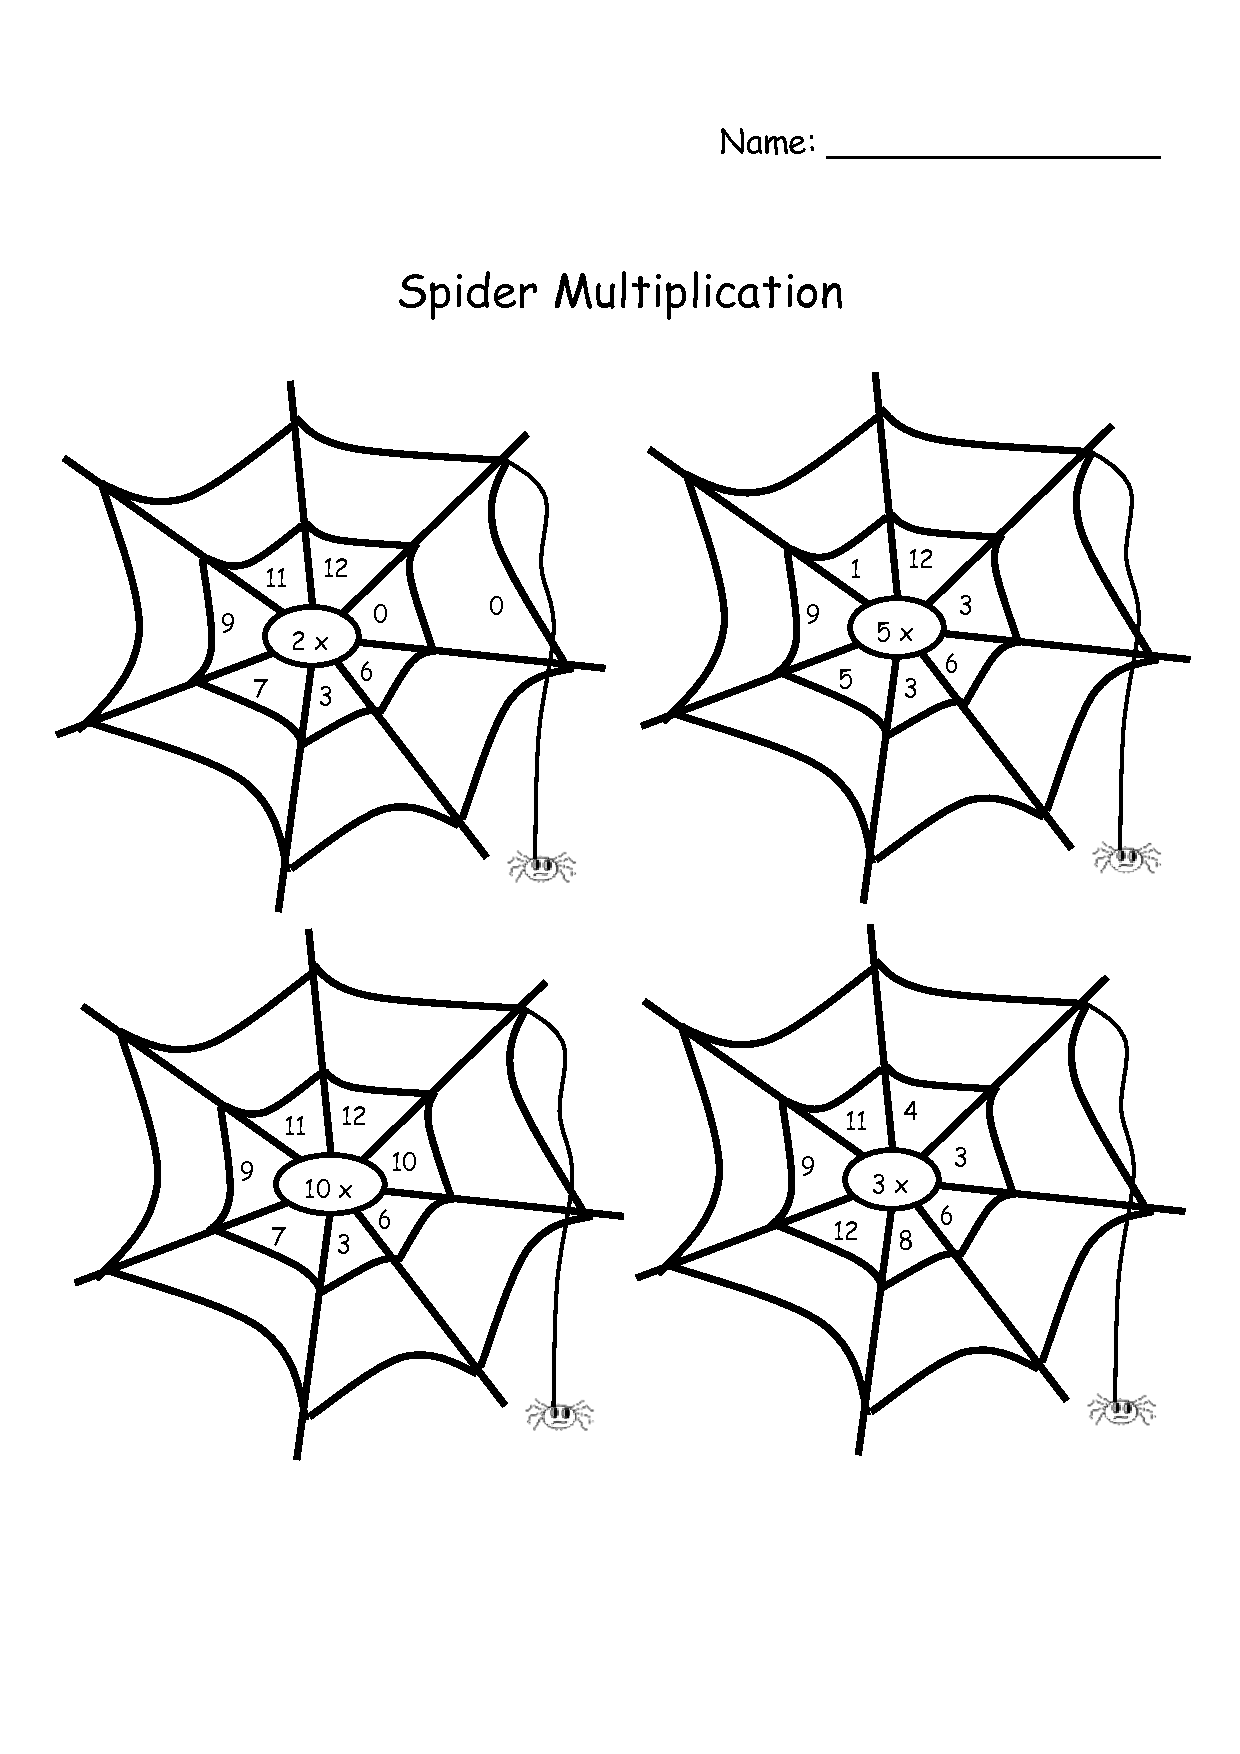 9-1-1 coloring pages and worksheets photo - 1